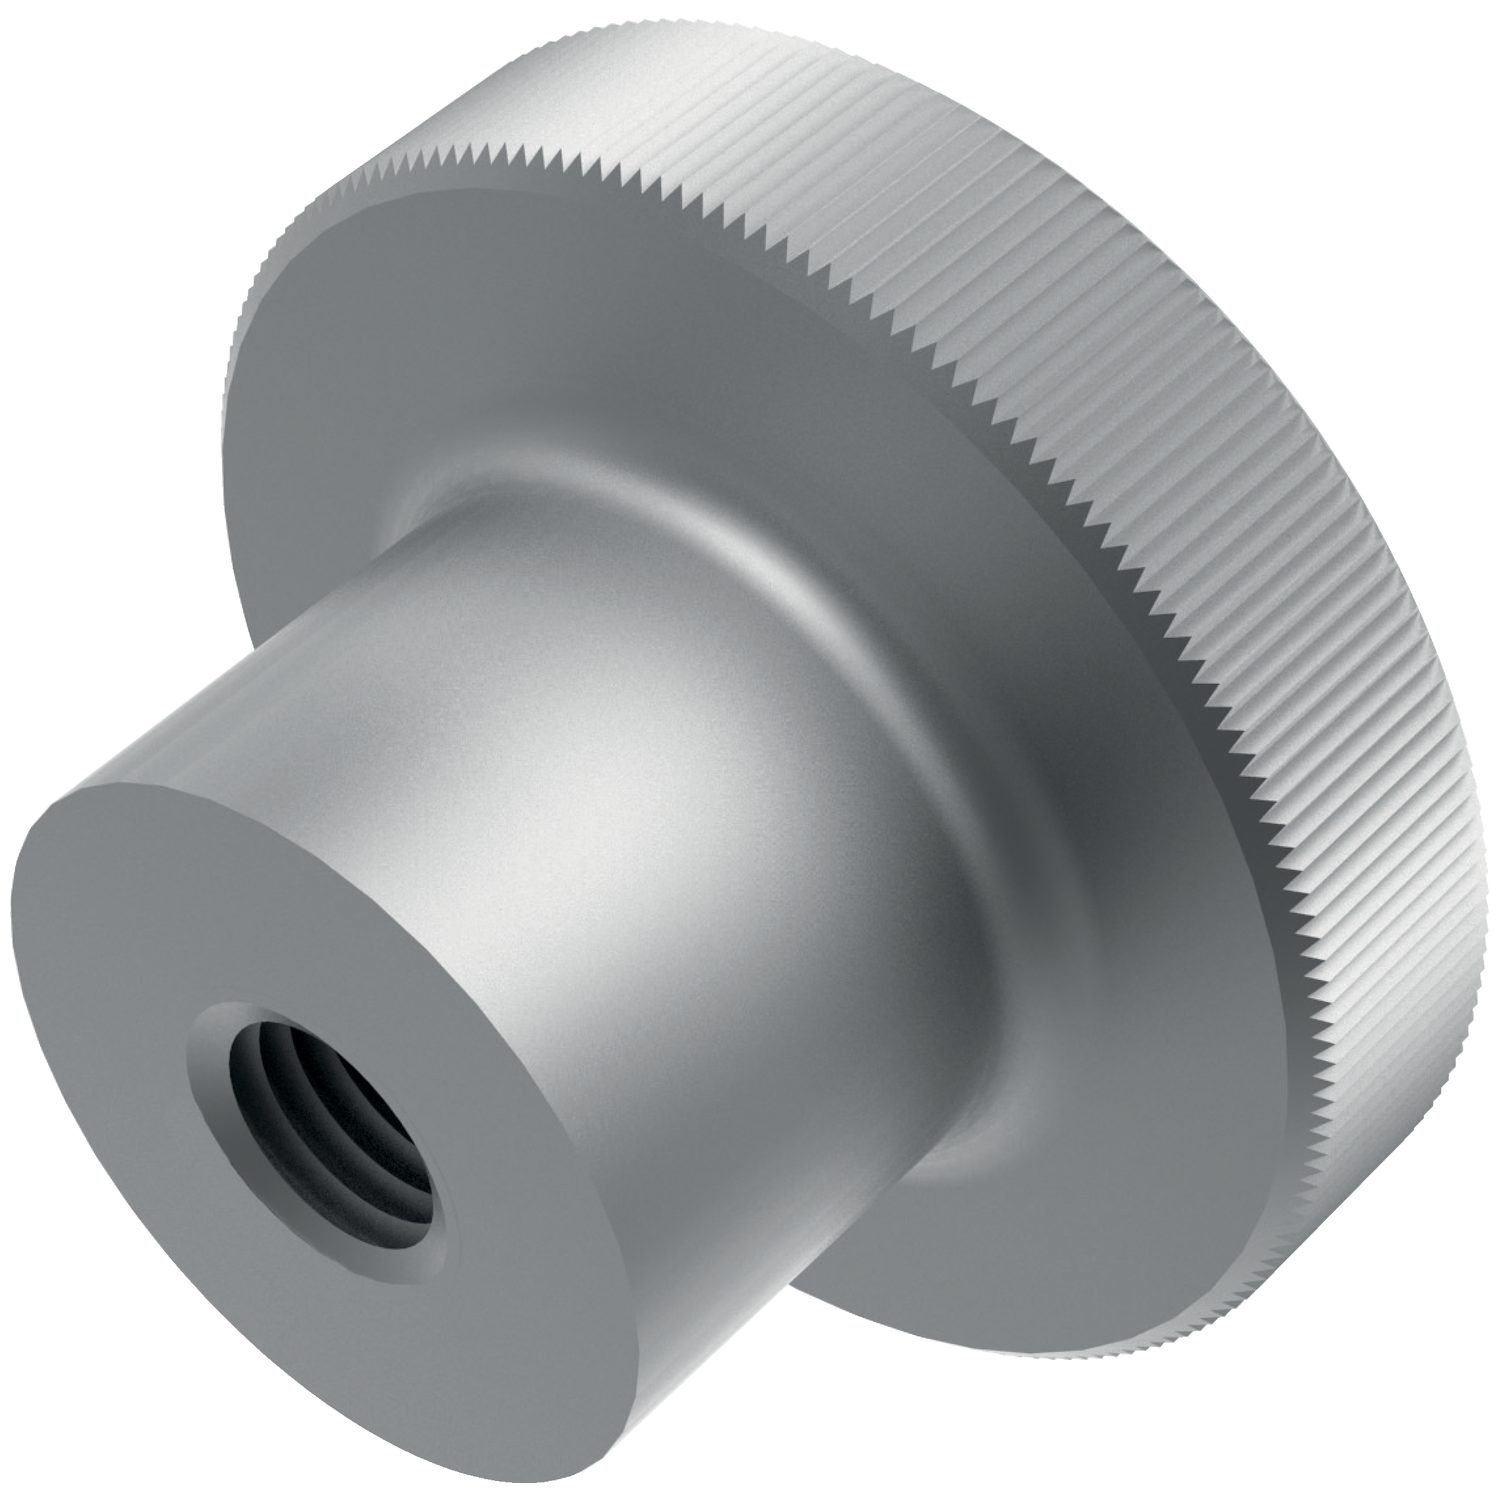 P0403.A4 - Knurled Thumb Nuts